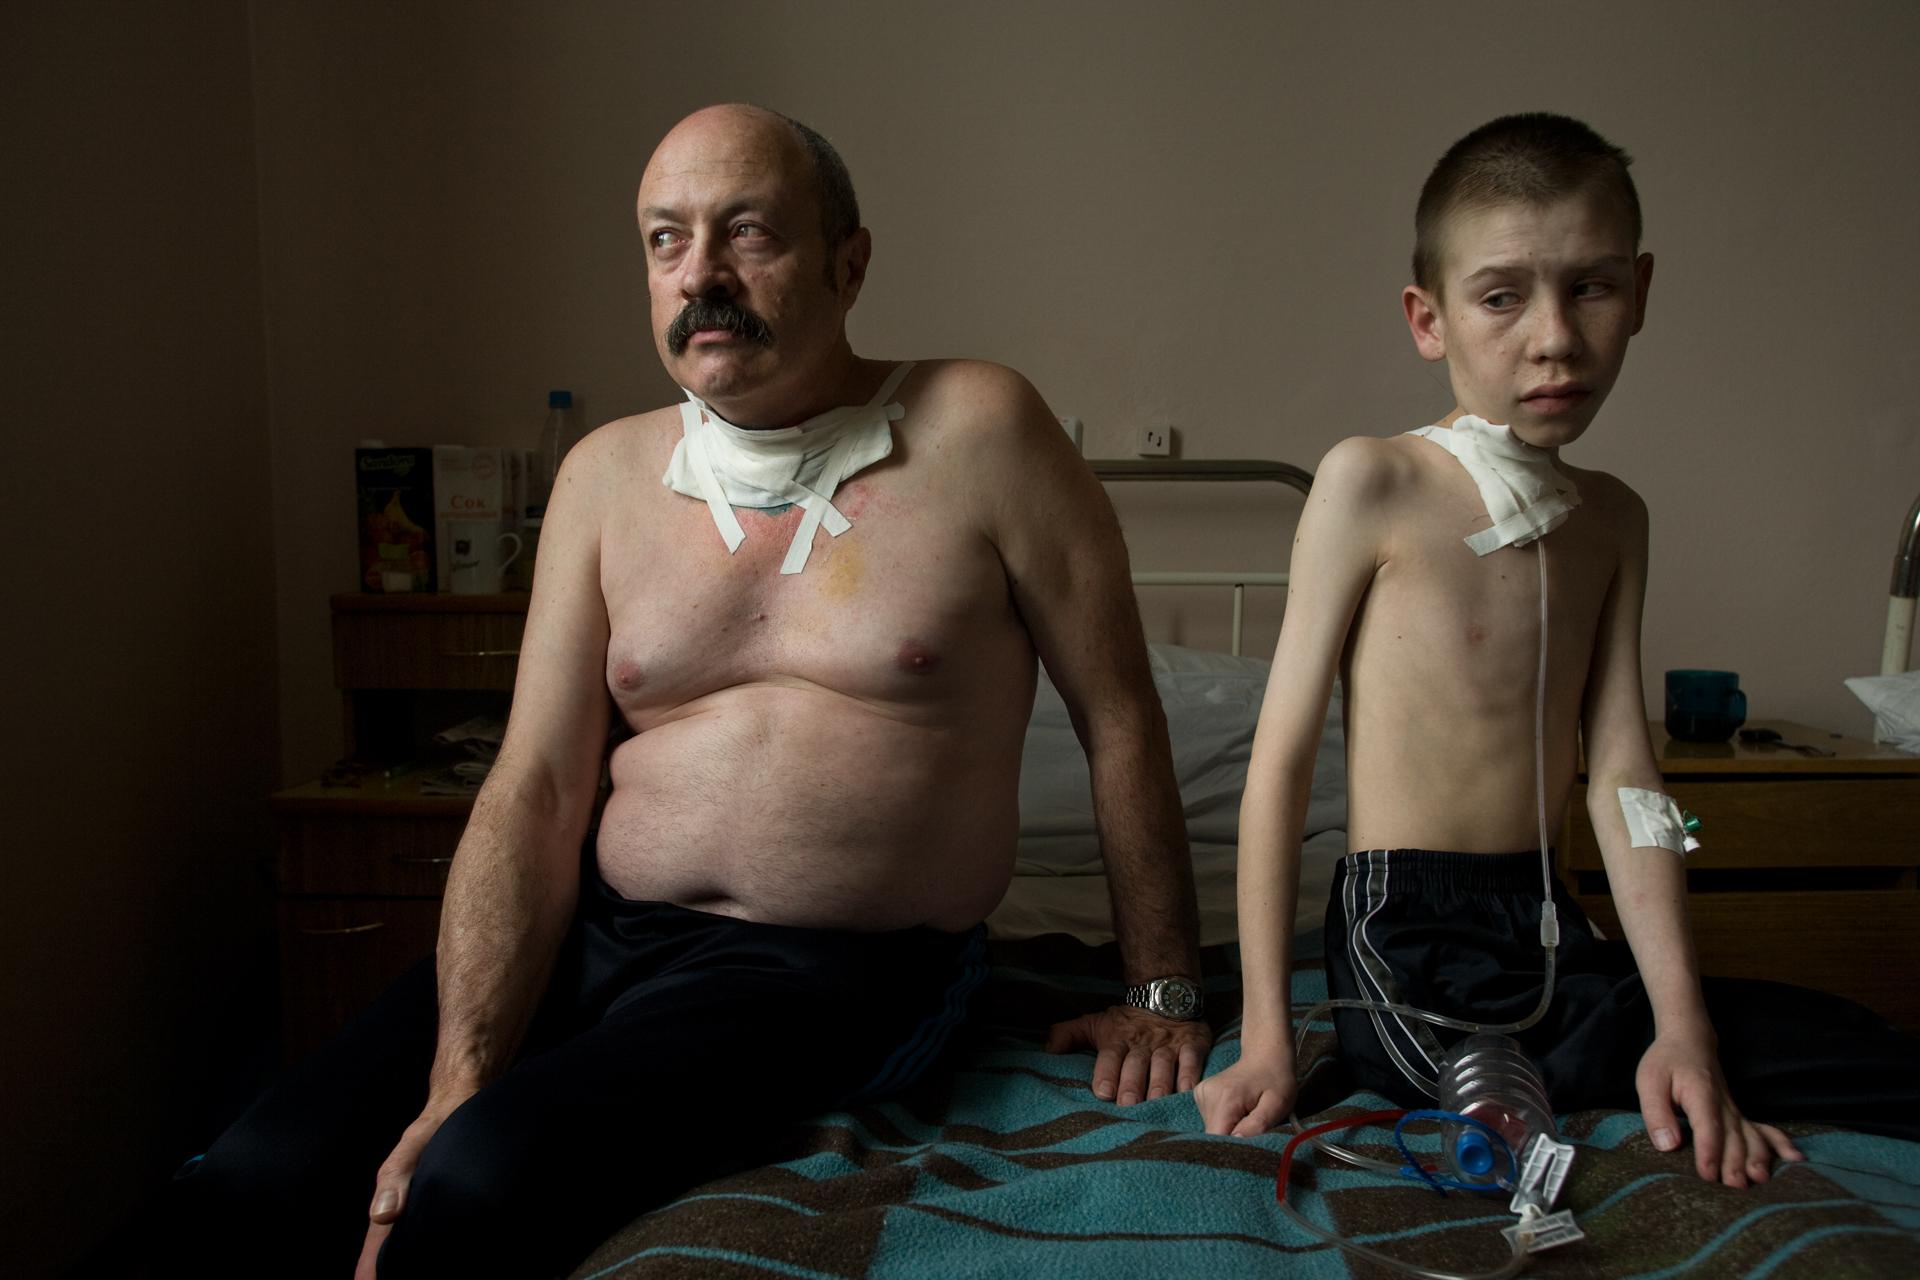 Suffering from thyroid cancer, which has been linked to the Cesium fallout from the Chernobyl accident, Oleg Shapiro, 54, and Dima Bogdanovich, 13, receive care at a thyroid hospital in Belarus.  Minsk, Belarus